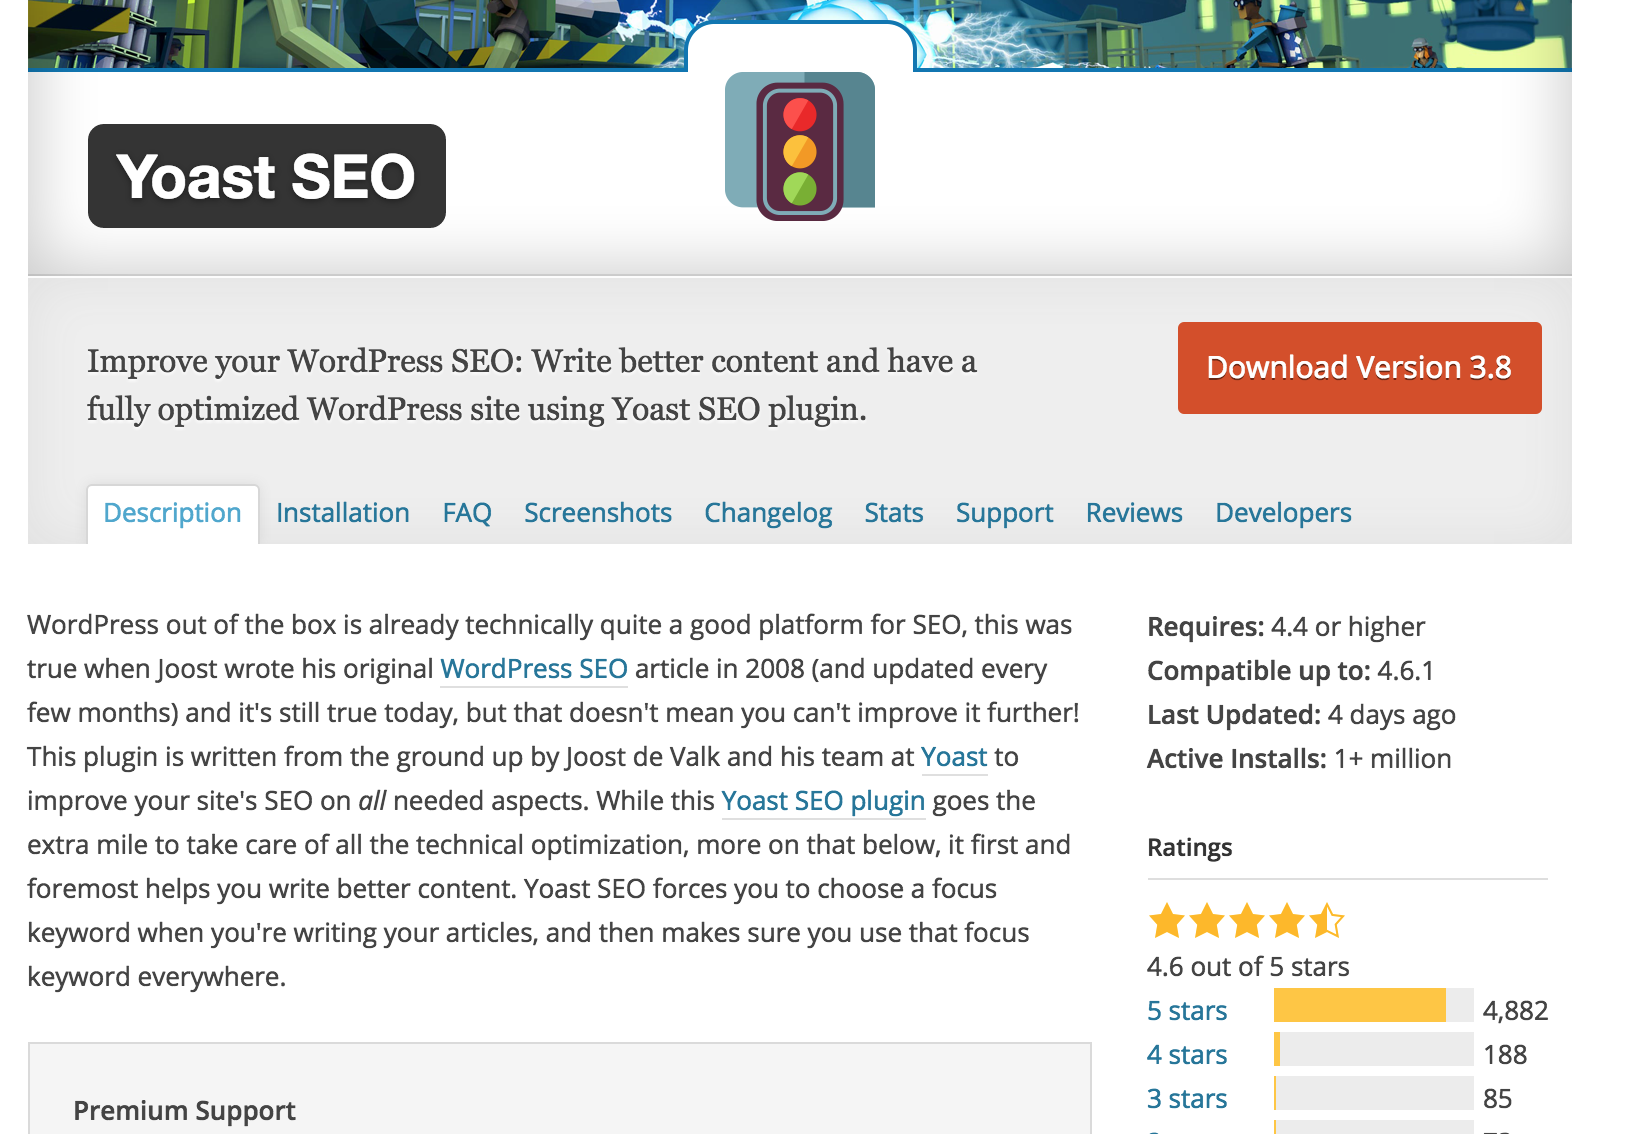 WordPress SEO: Yoast